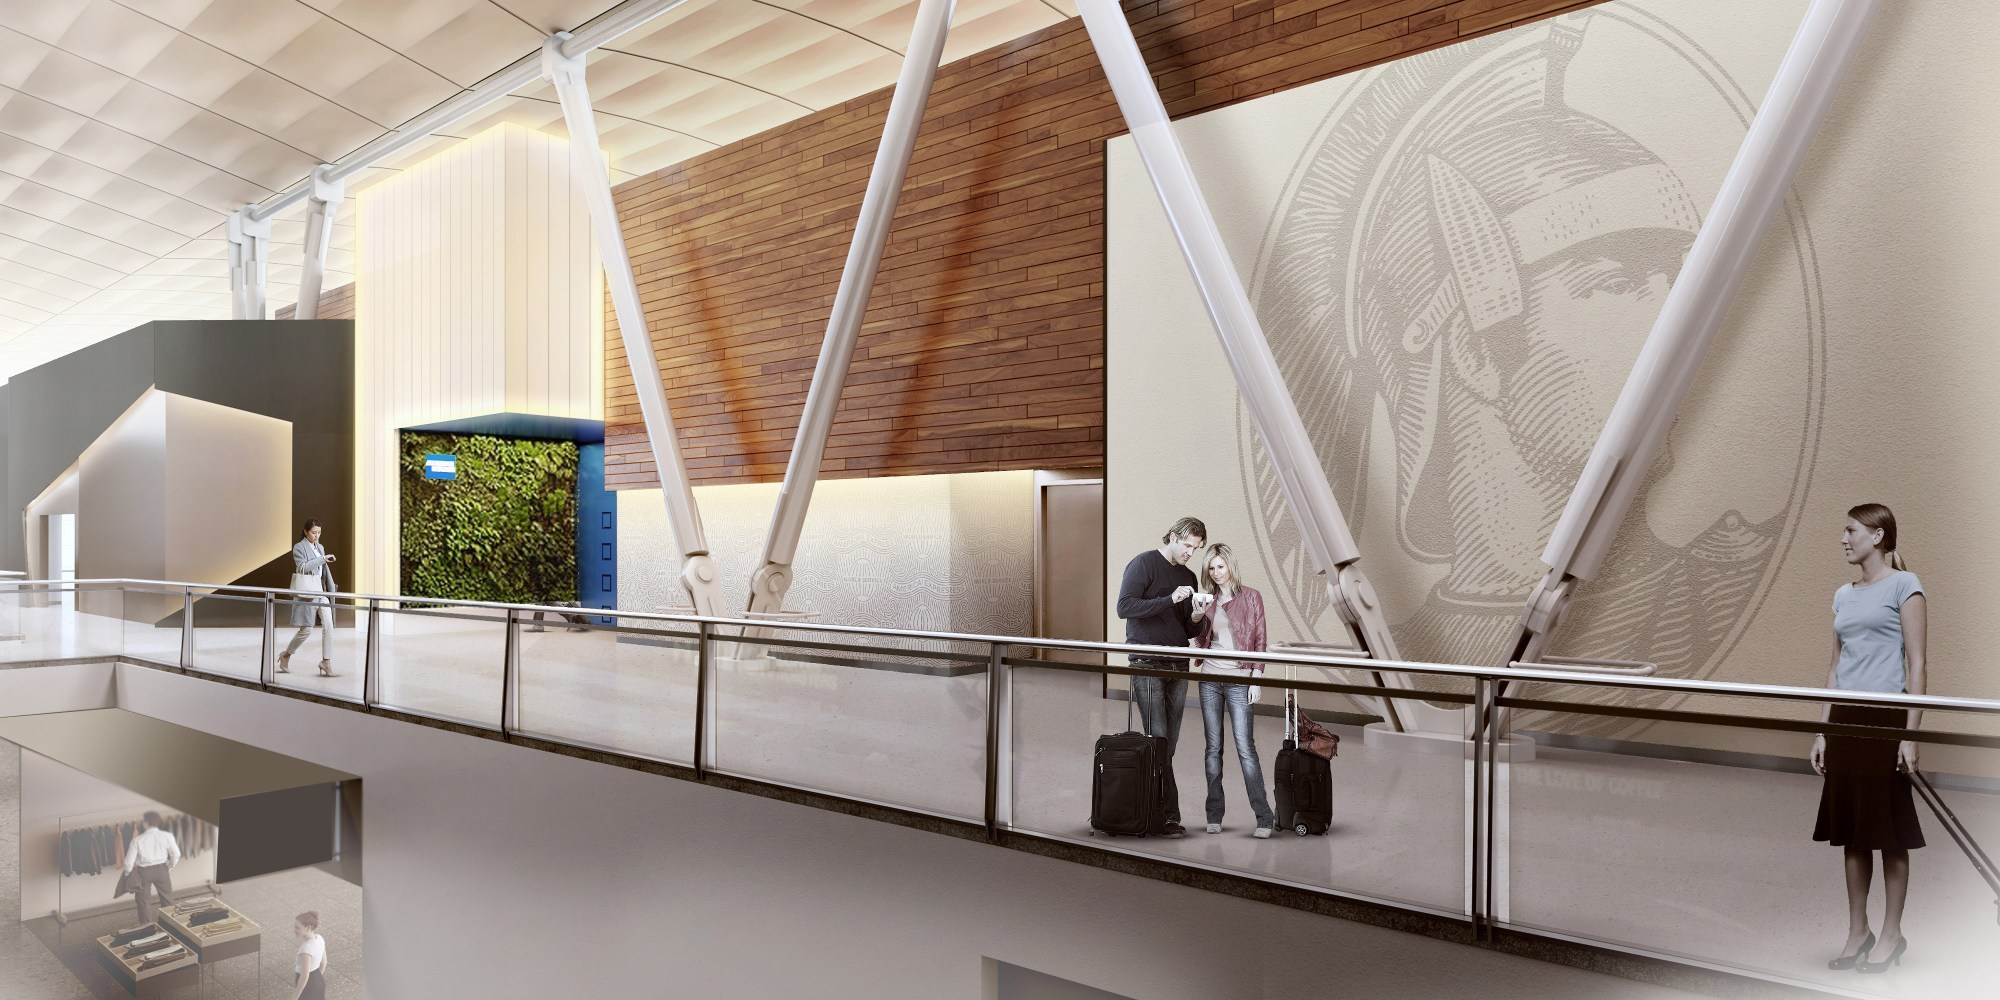 American Express launches a Centurion Lounge: Are you eligible for this perk?